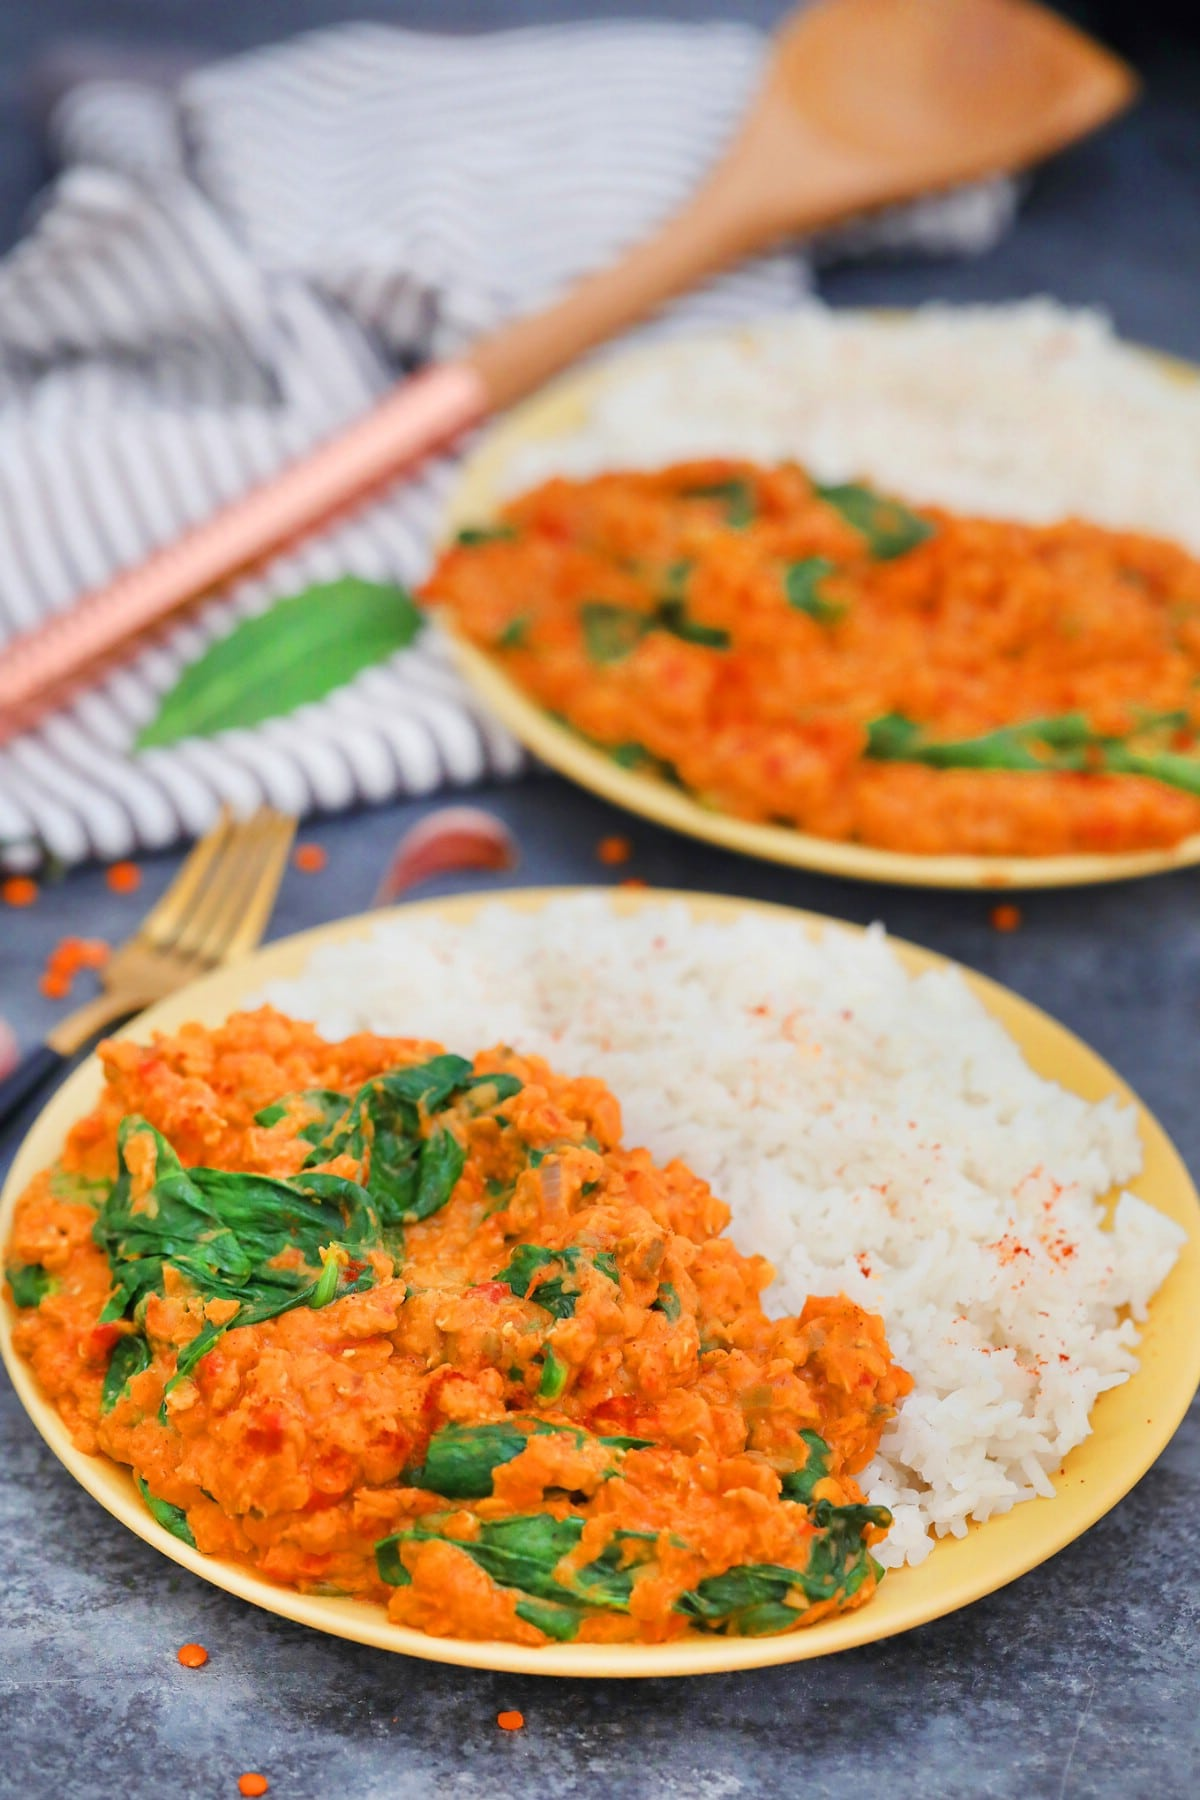 Two plates of red lentil curry and rice